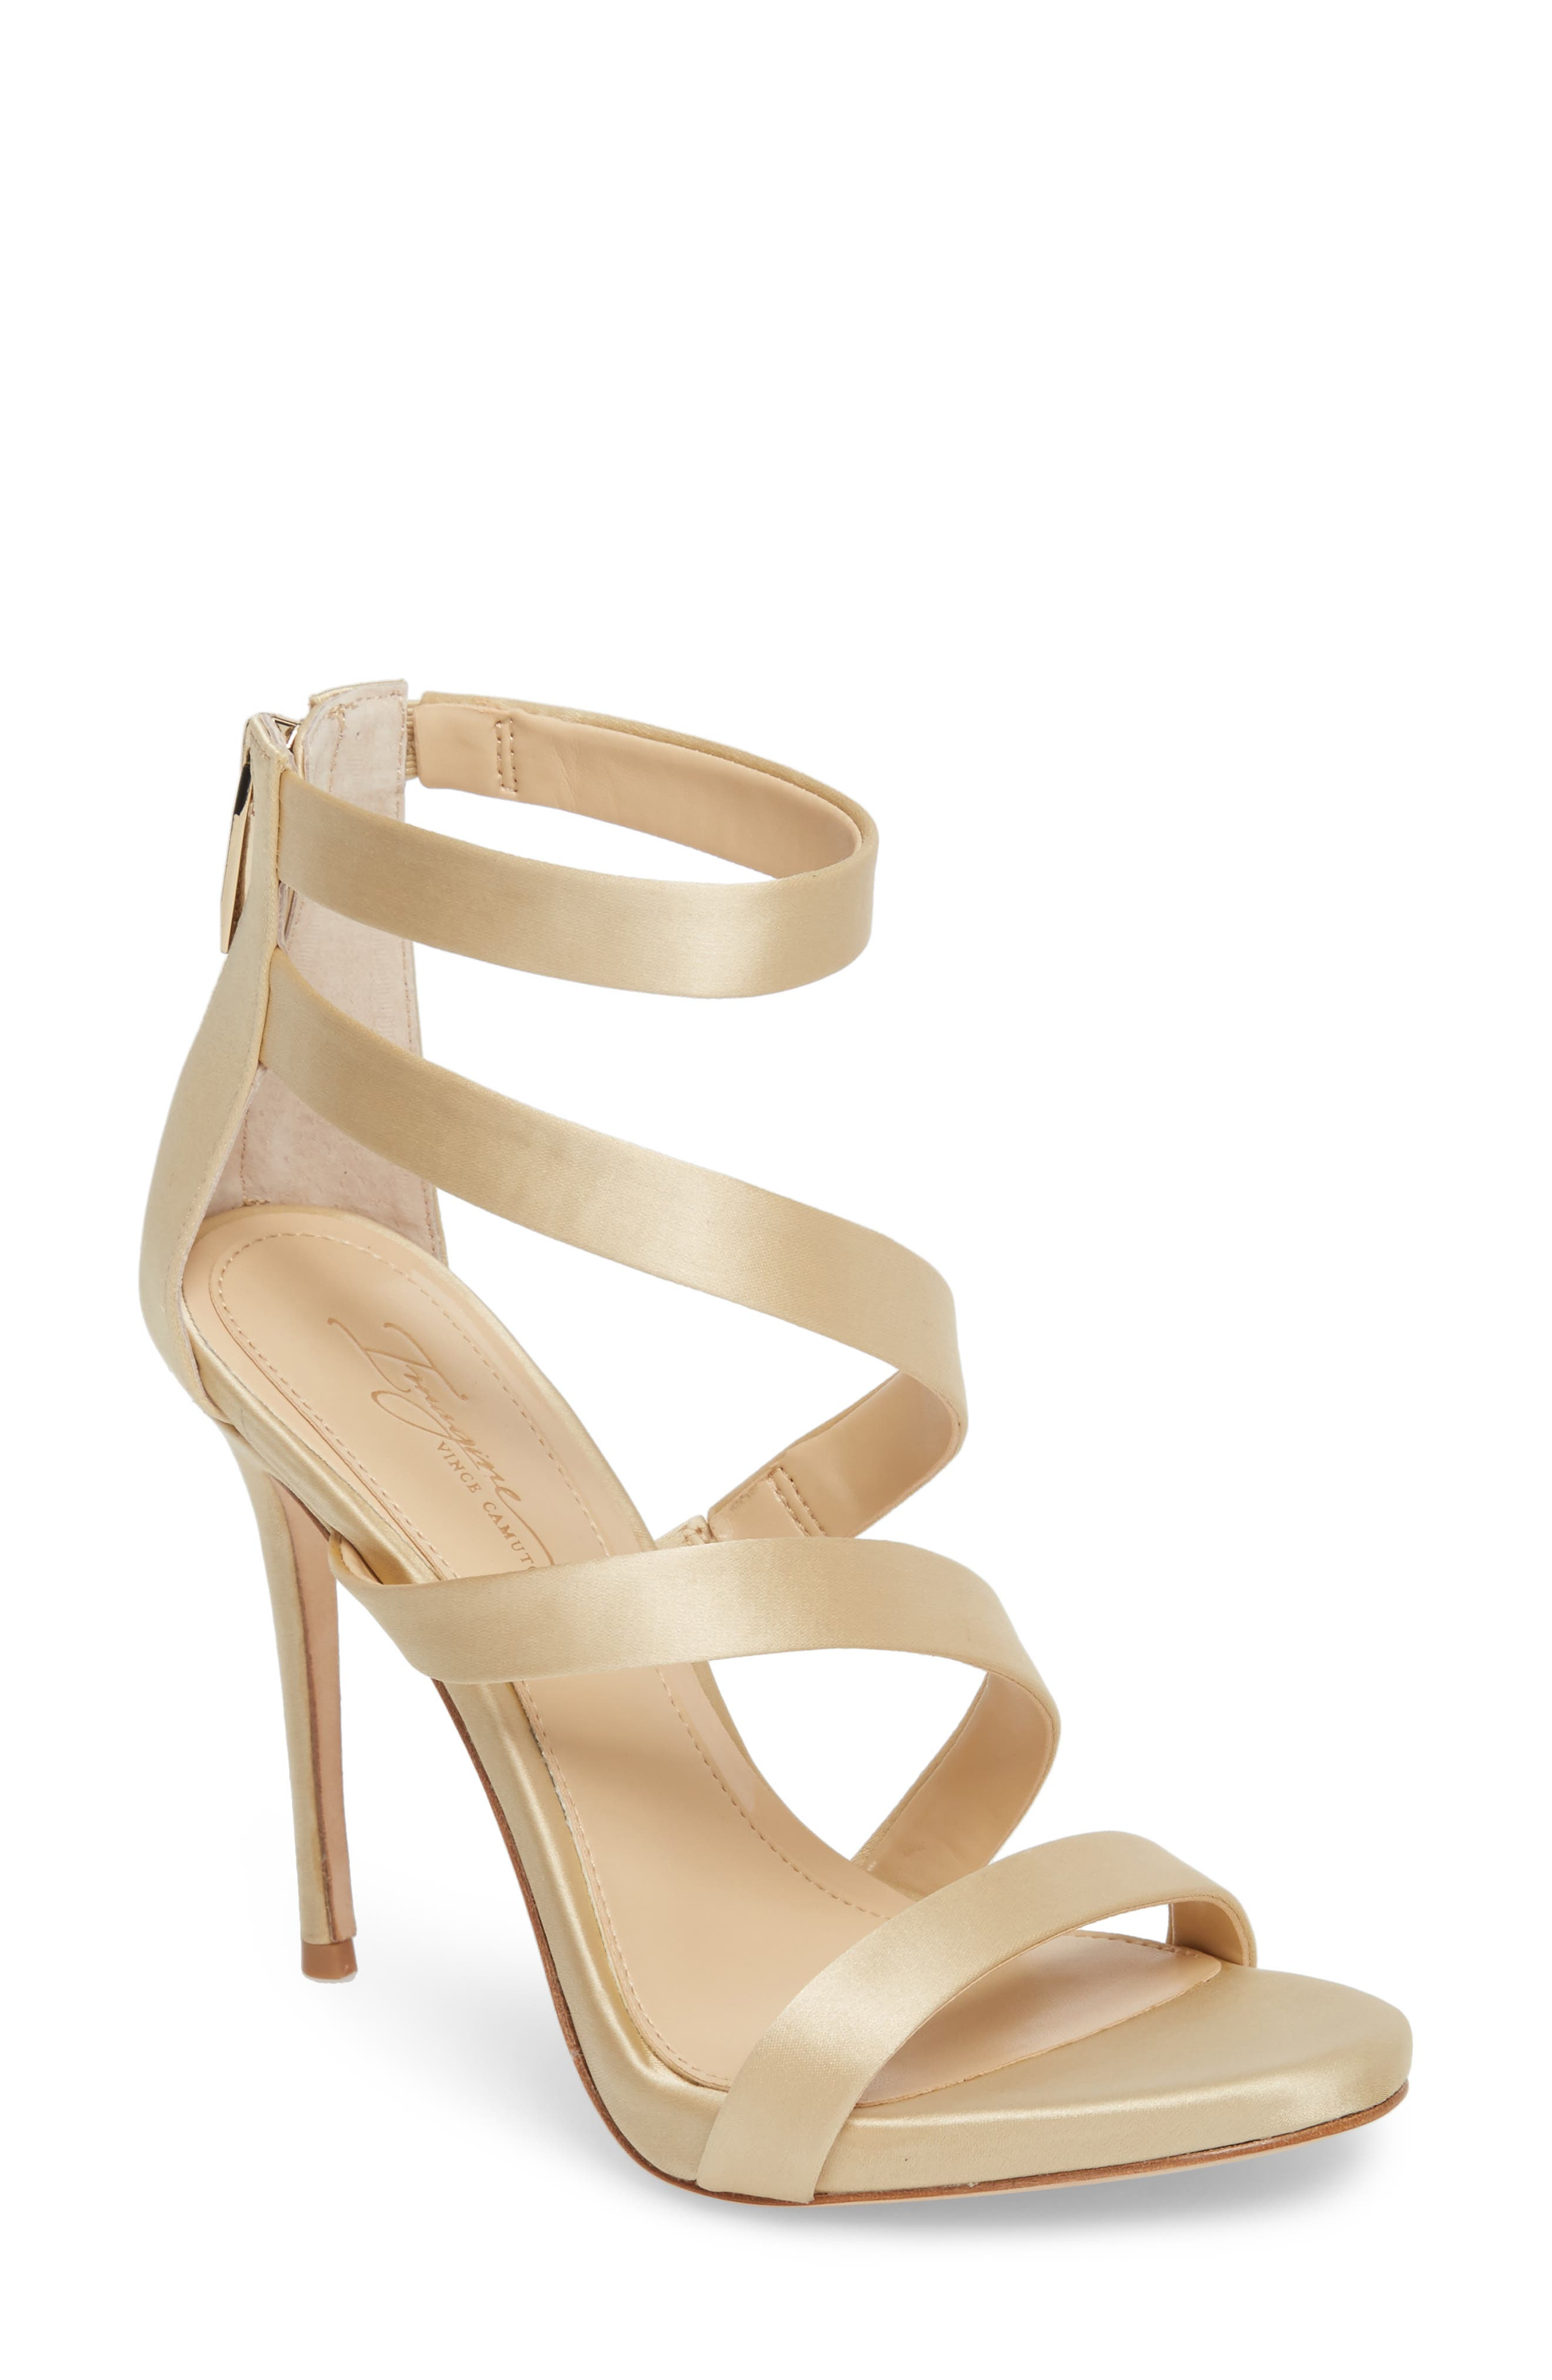 Imagine By Vince Camuto Dalles Tall Strappy Sandal